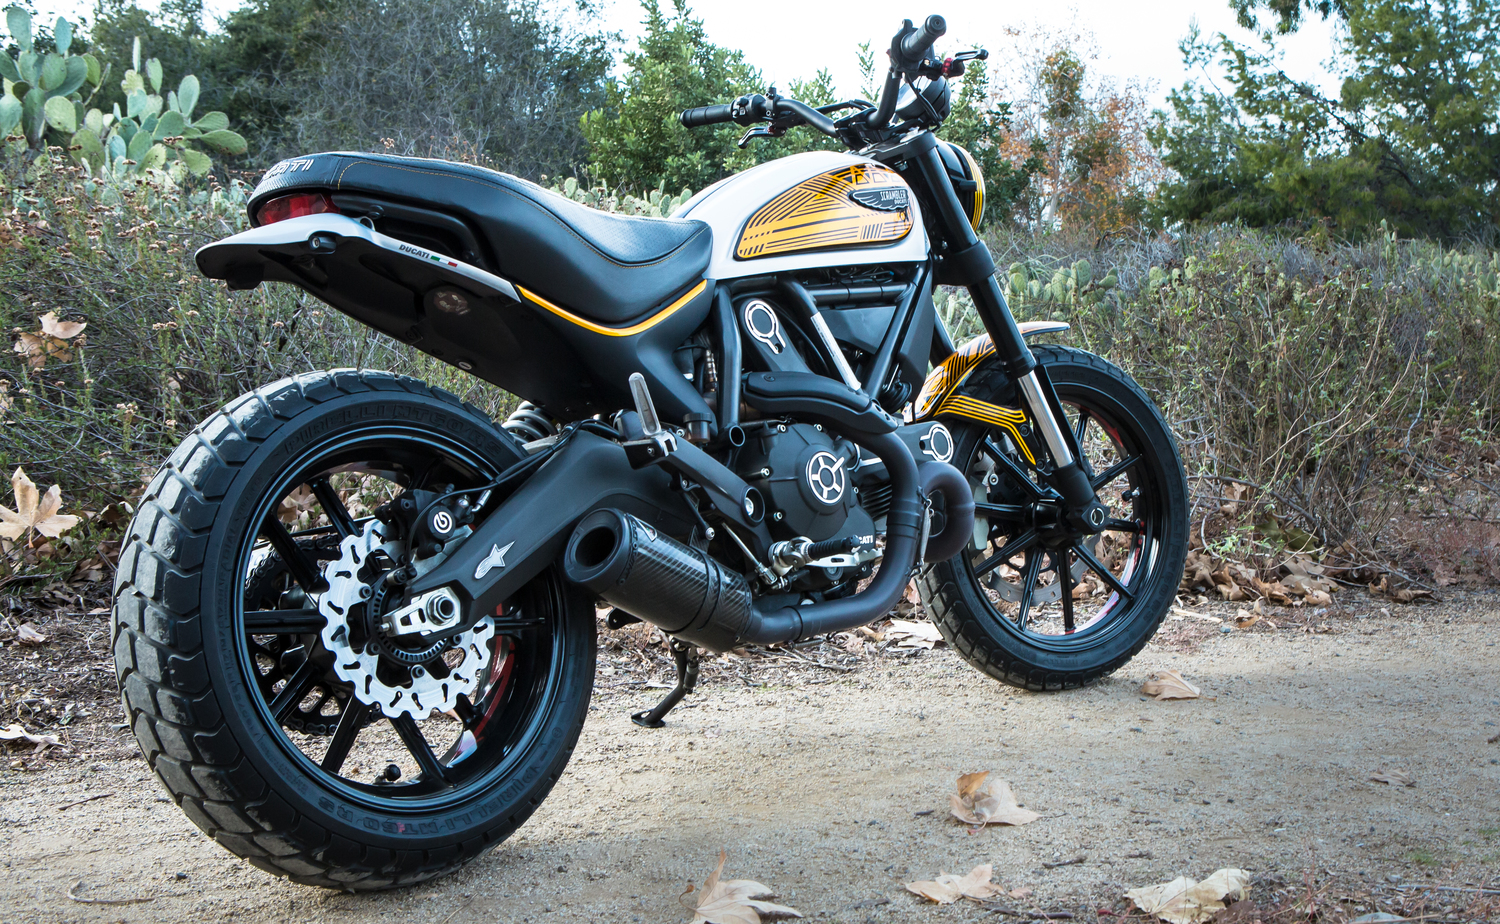 Anaheim+Rod+and+Custom+Ducati+Scrambler+Custom+Paint+5.jpg